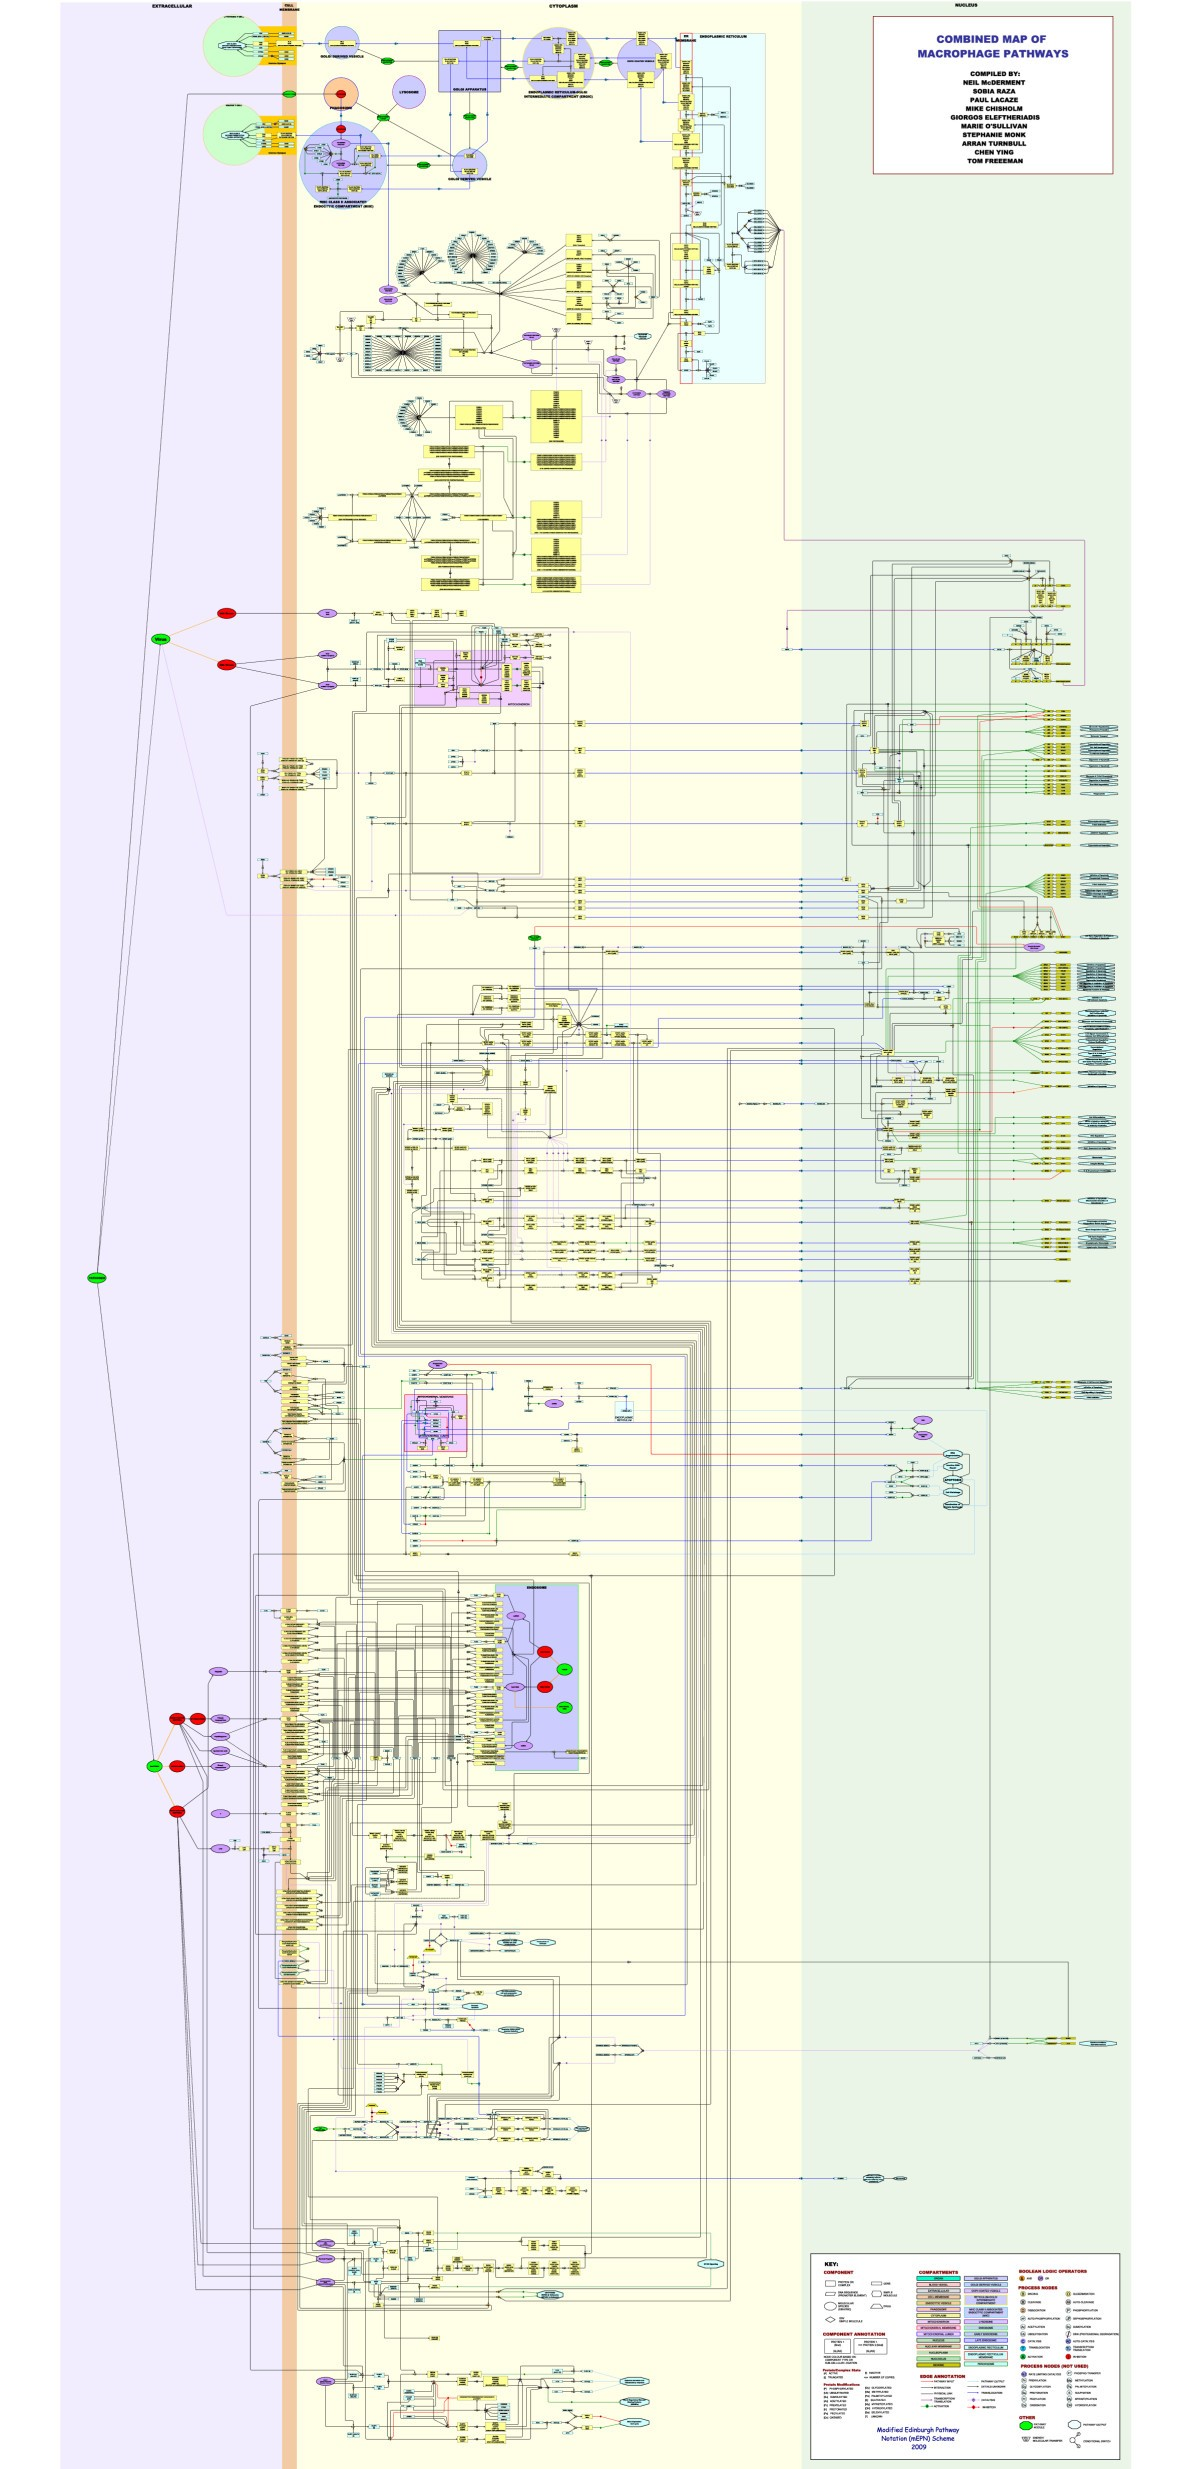 Construction Of A Large Scale Integrated Map Macrophage Pathogen 79 Honda Pa 50 Wiring Diagram Figure 2